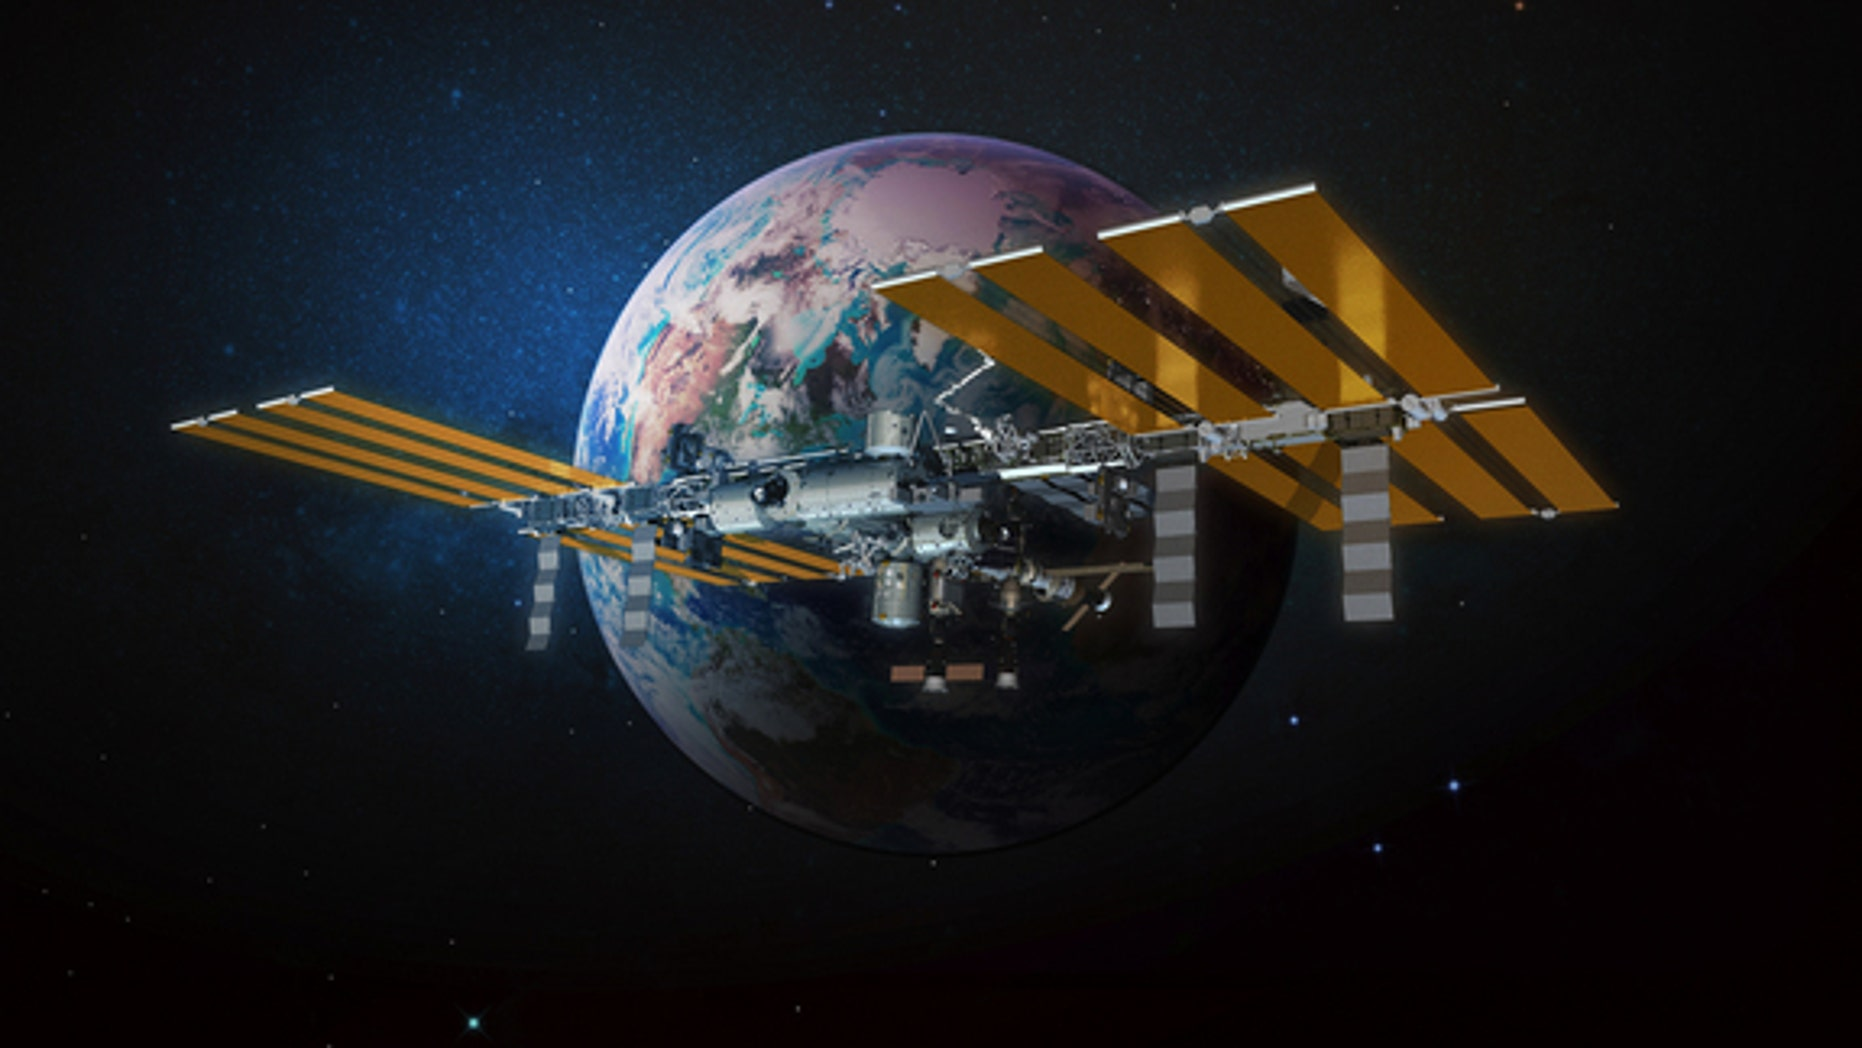 The cover of NASA's 2015 fiscal year budget proposal released on March 4, 2014. NASA is seeking an essentially flat $17.5 billion in funding for 2015, a budget that would invest in astrophysics and planetary science programs, while maintaining